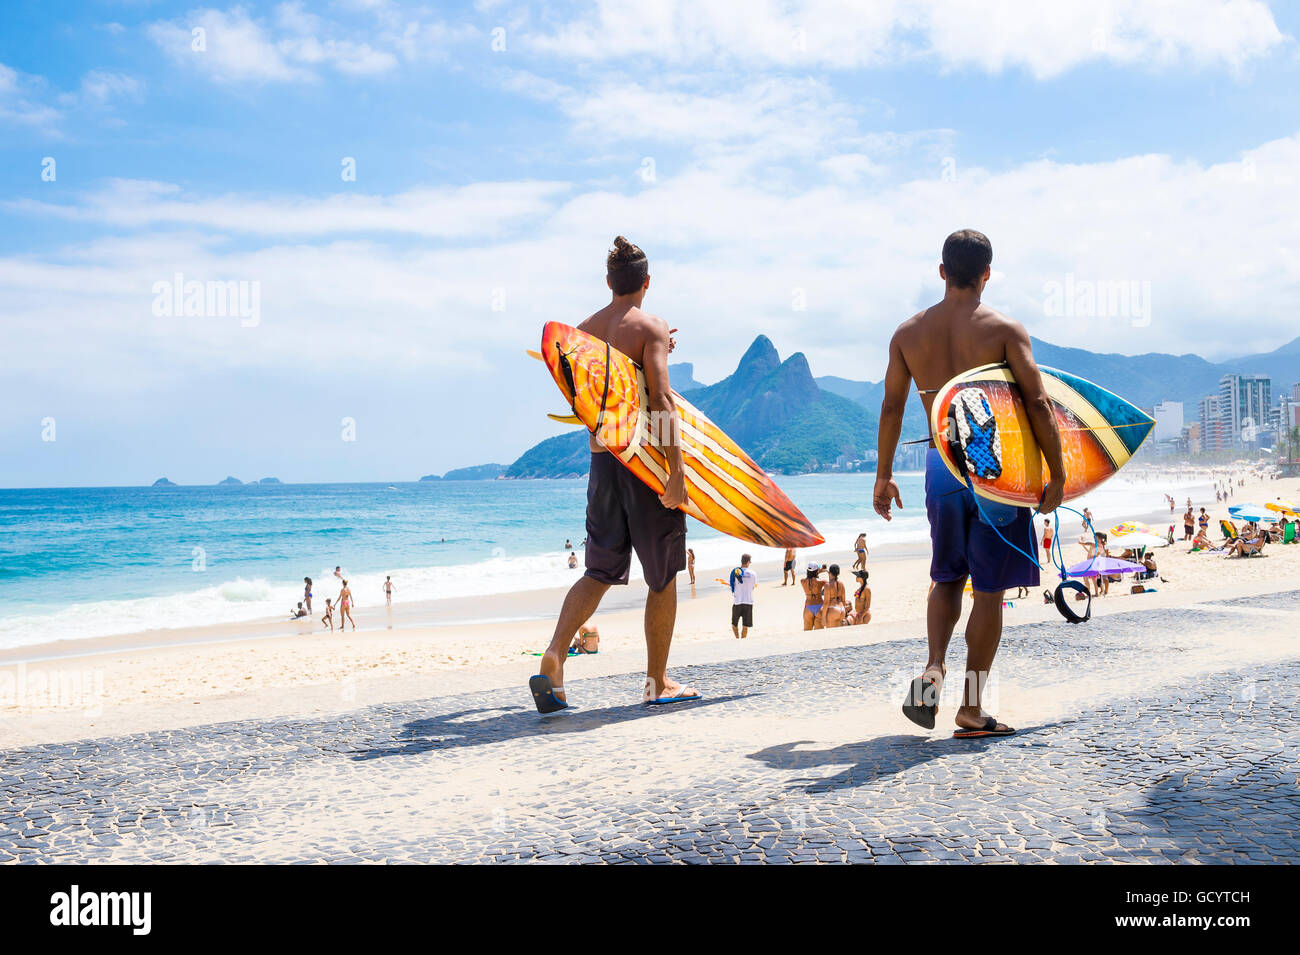 RIO DE JANEIRO - APRIL 3, 2016: Young carioca Brazilians walk with surfboards from Arpoador, the popular surf point. - Stock Image